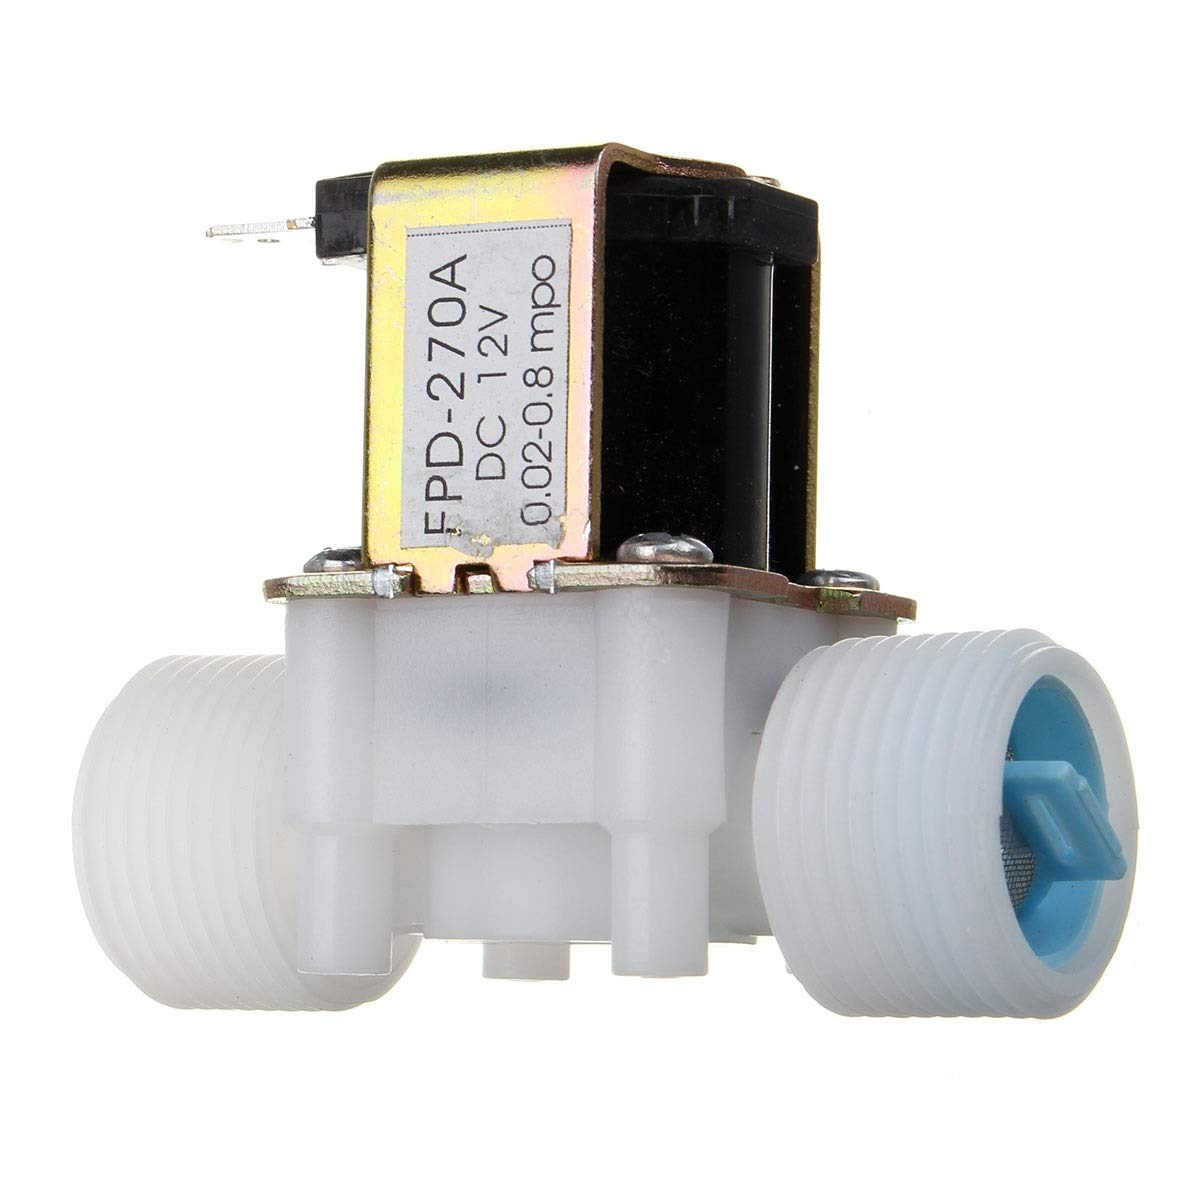 Tuersuer Easy to Assemble G3/4 12V PP Normally Closed Type Solenoid Valve Water Diverter Device